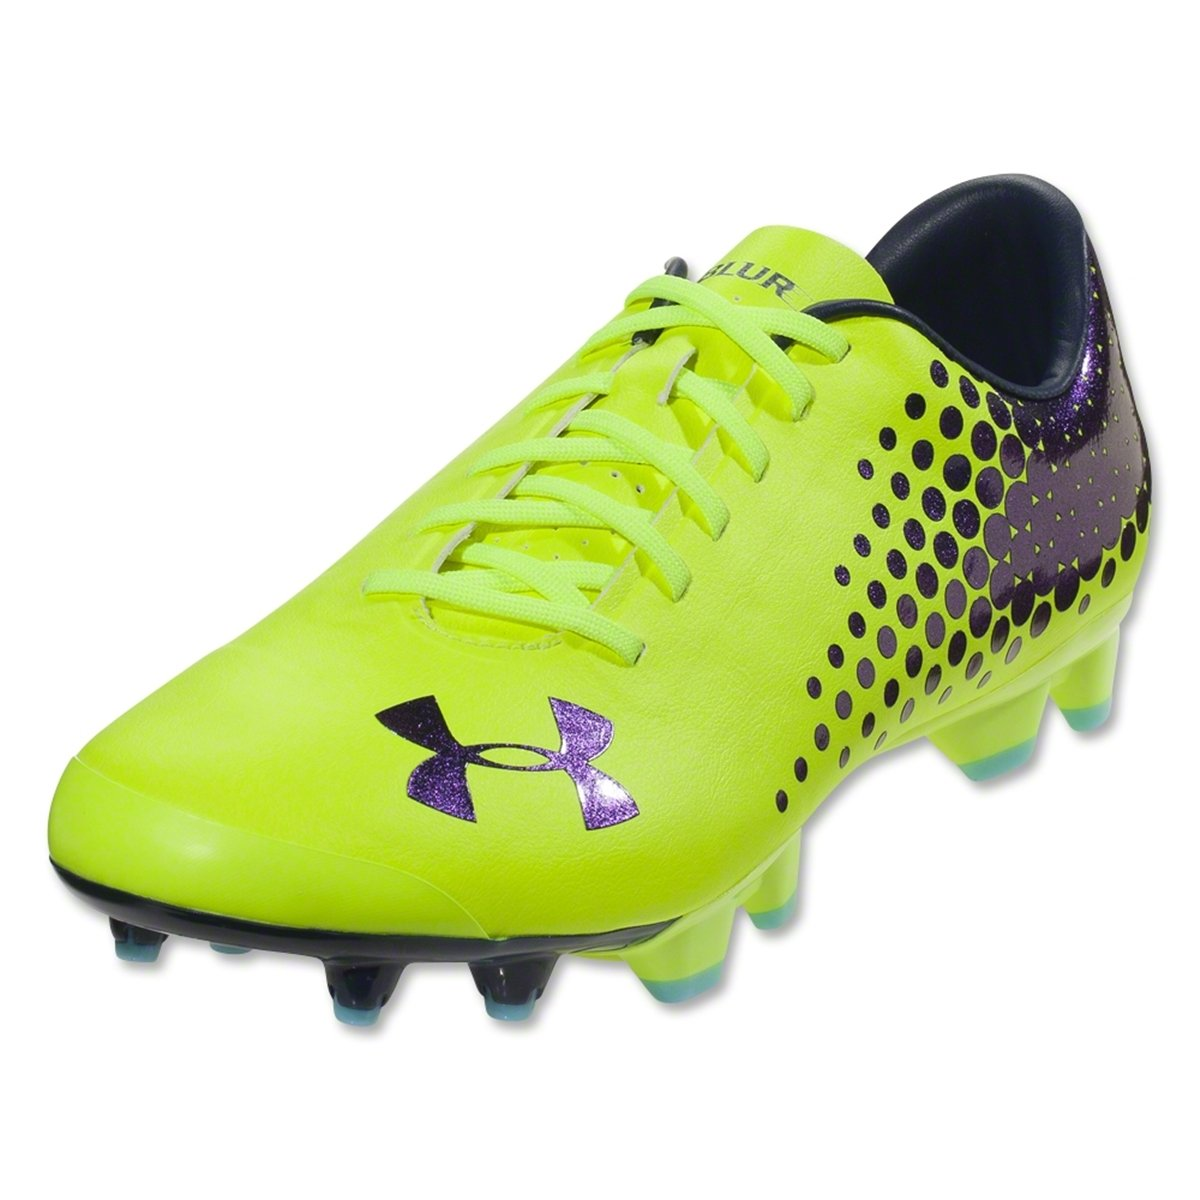 Under Armour Blur CBN IV FG gelb